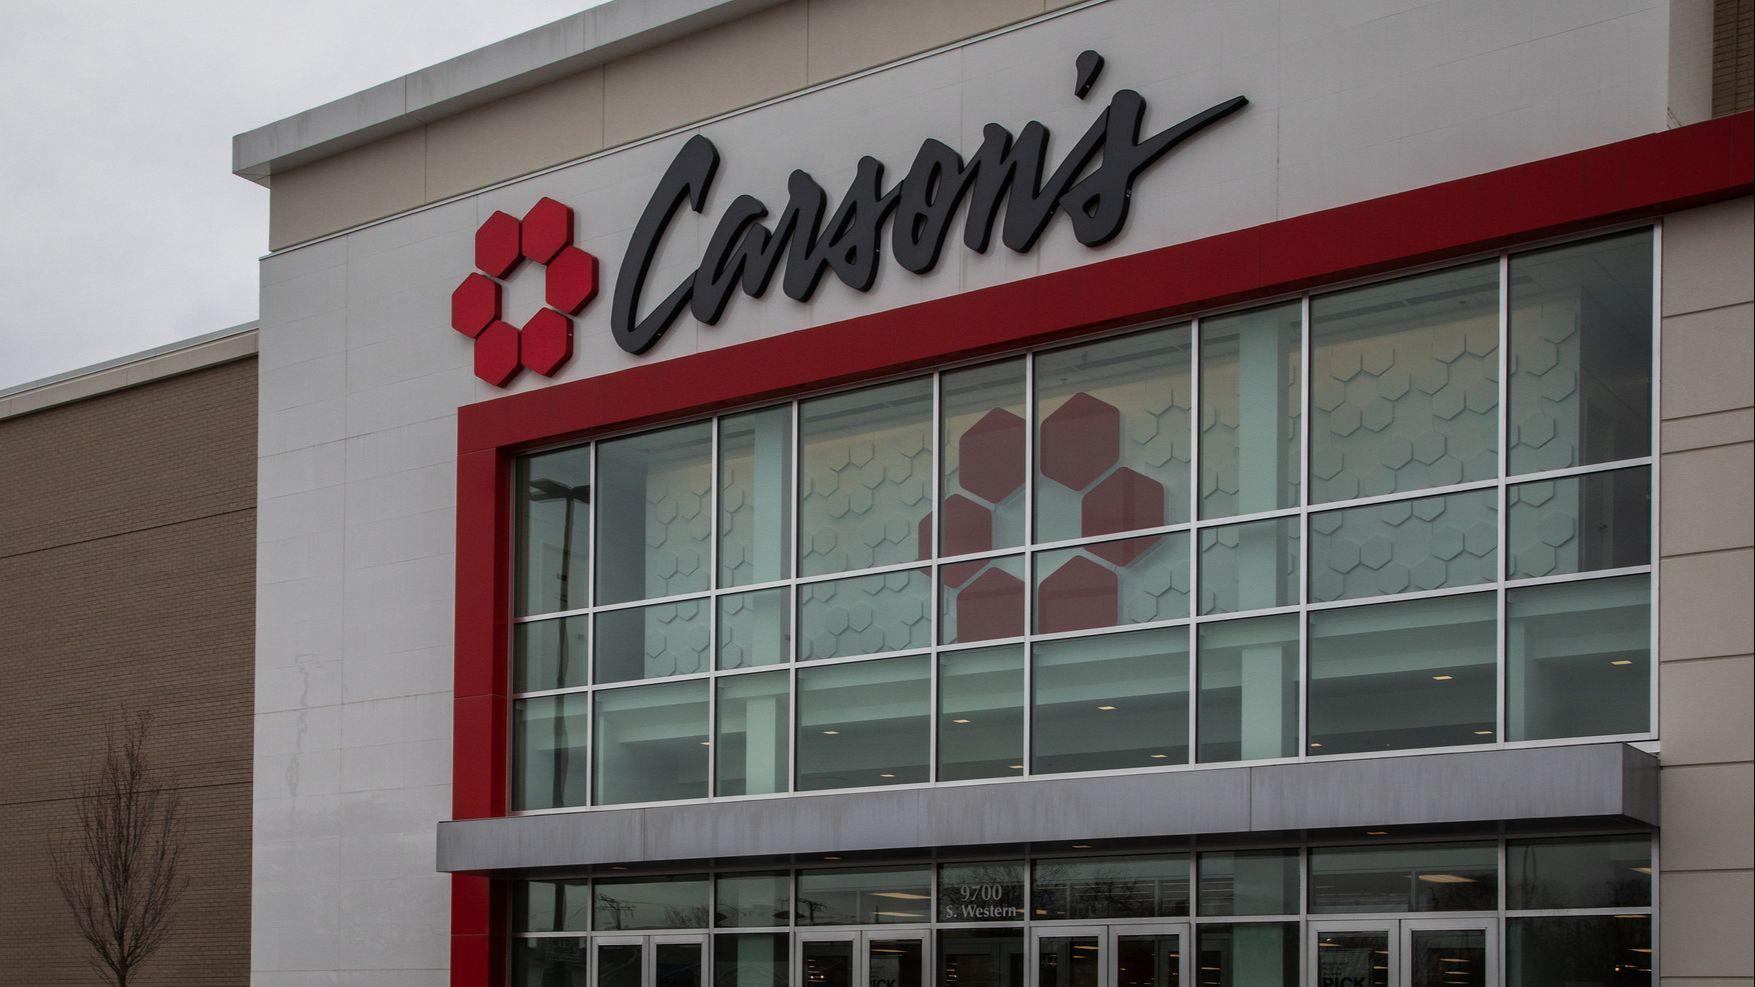 Carson's to close after parent company fails to find buyer